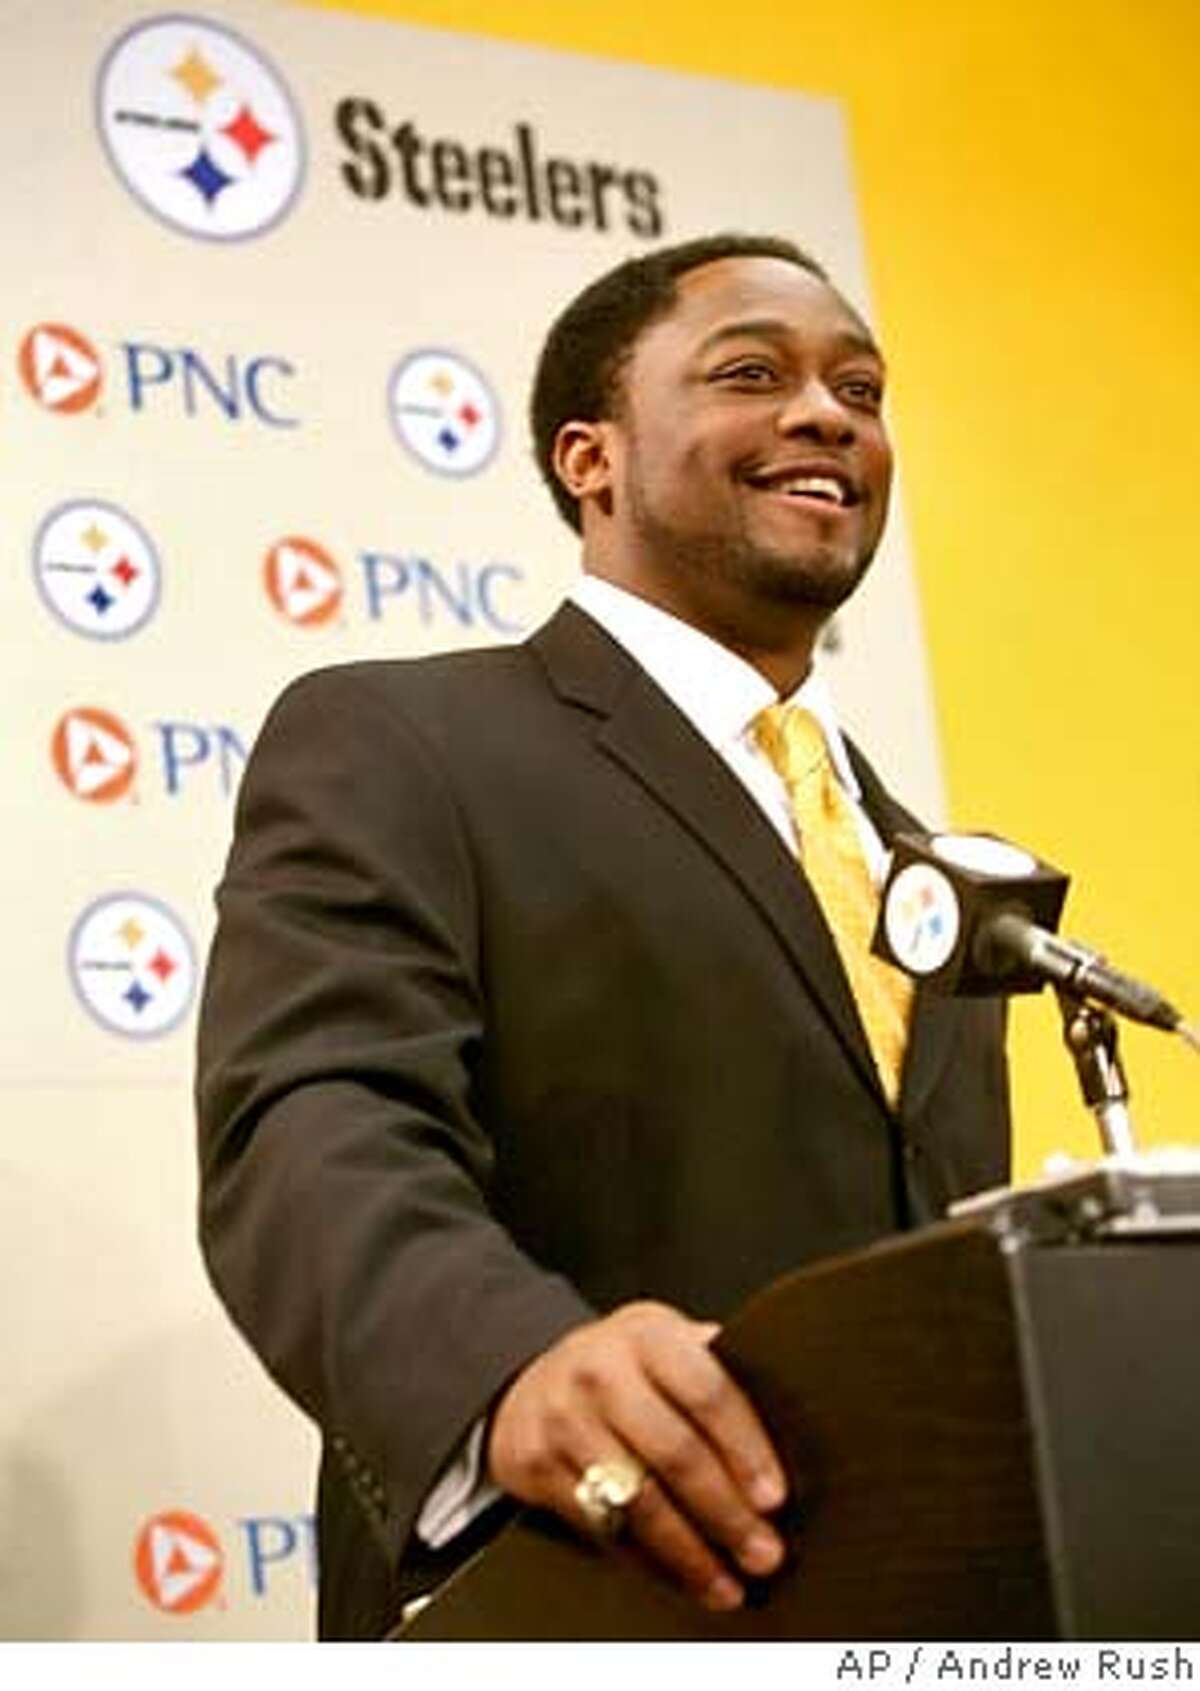 Mike Tomlin addresses the media the Pittsburgh Steelers headquarters in Pittsburgh, Monday, Jan. 22, 2007. Tomlin, the defensive coordinator of the Minnesota Vikings, was hired by the Steelers and will be the first black head coach in the team's 74-year history. (AP Photo/Andrew Rush) EFE OUT